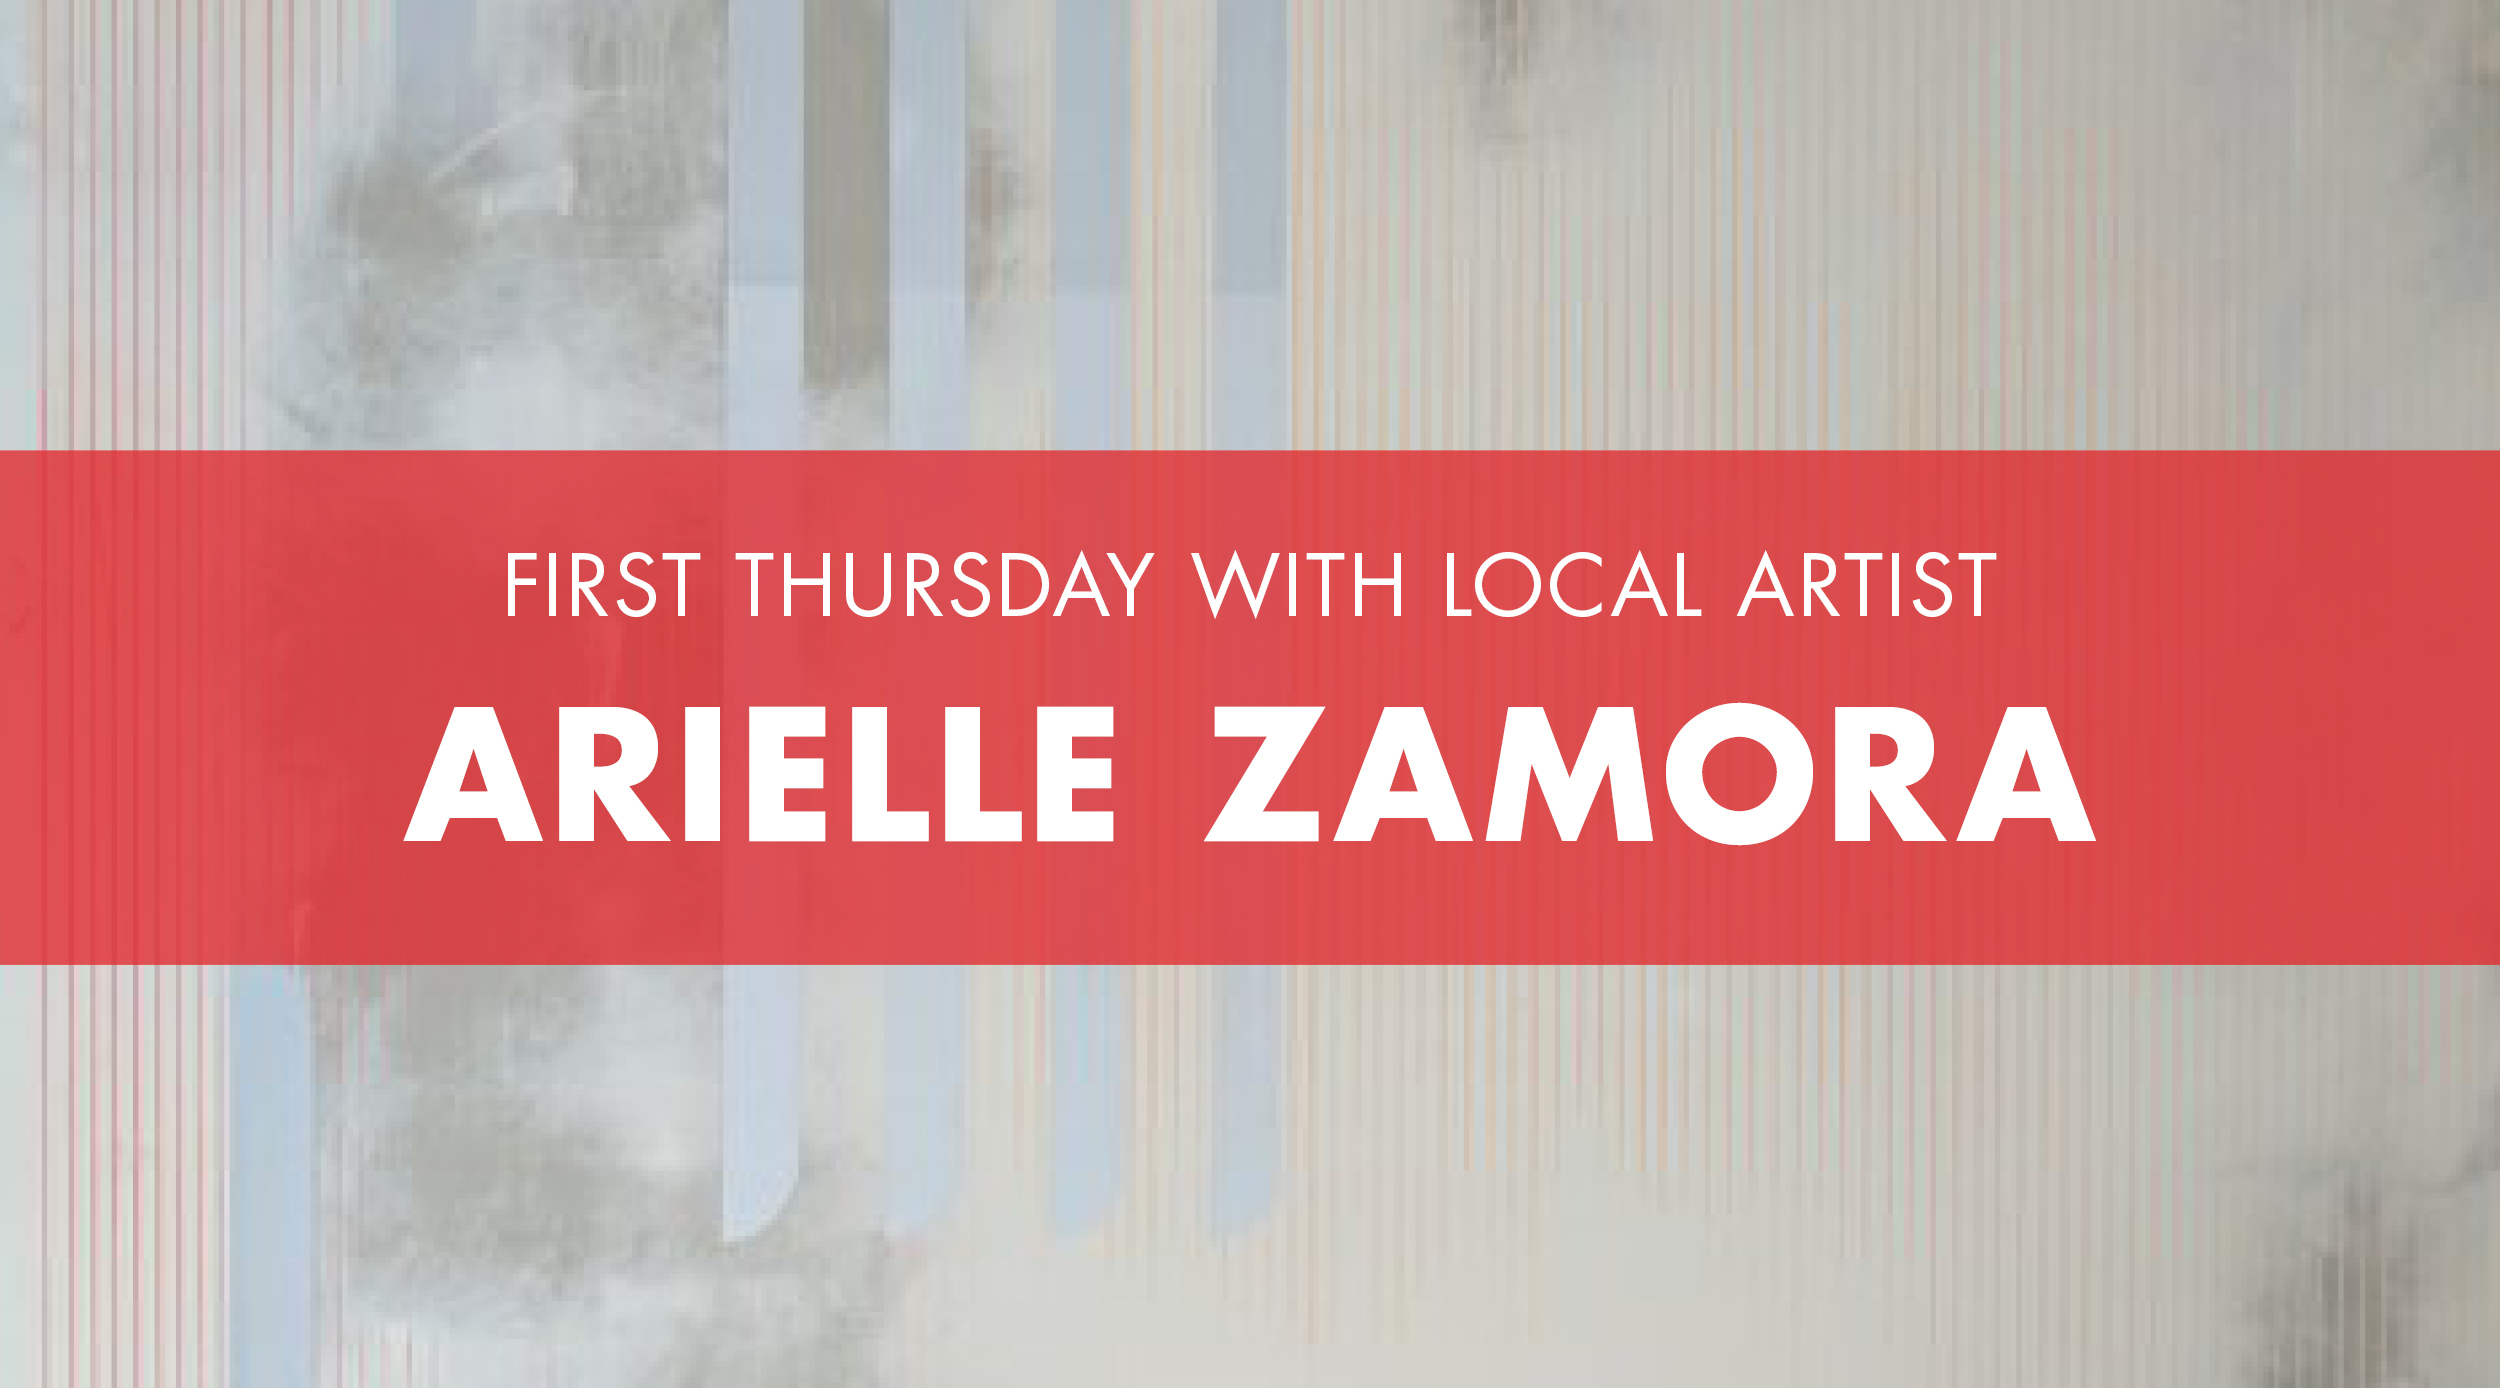 Eblast_FirstThursday_ArielleZamora_2019_header_2.jpg